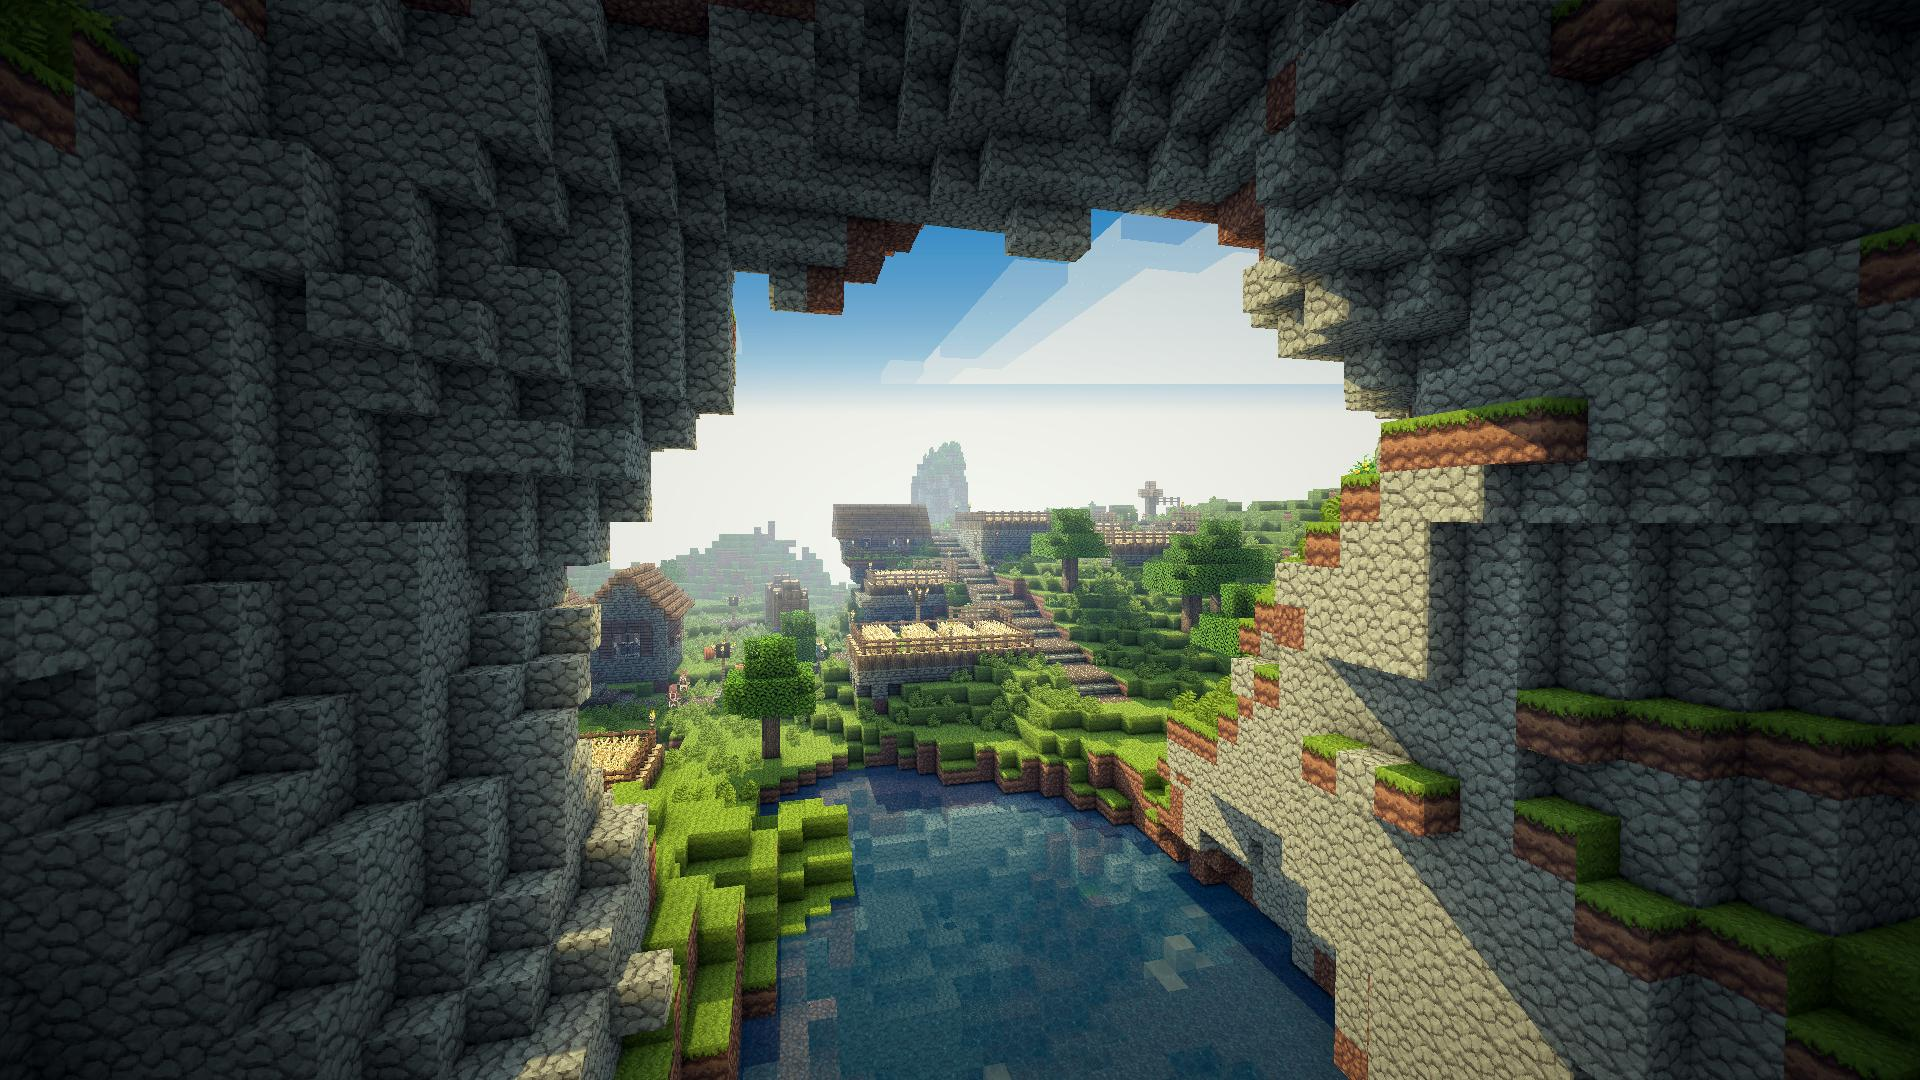 minecraft wallpaper   Large Images 1920x1080